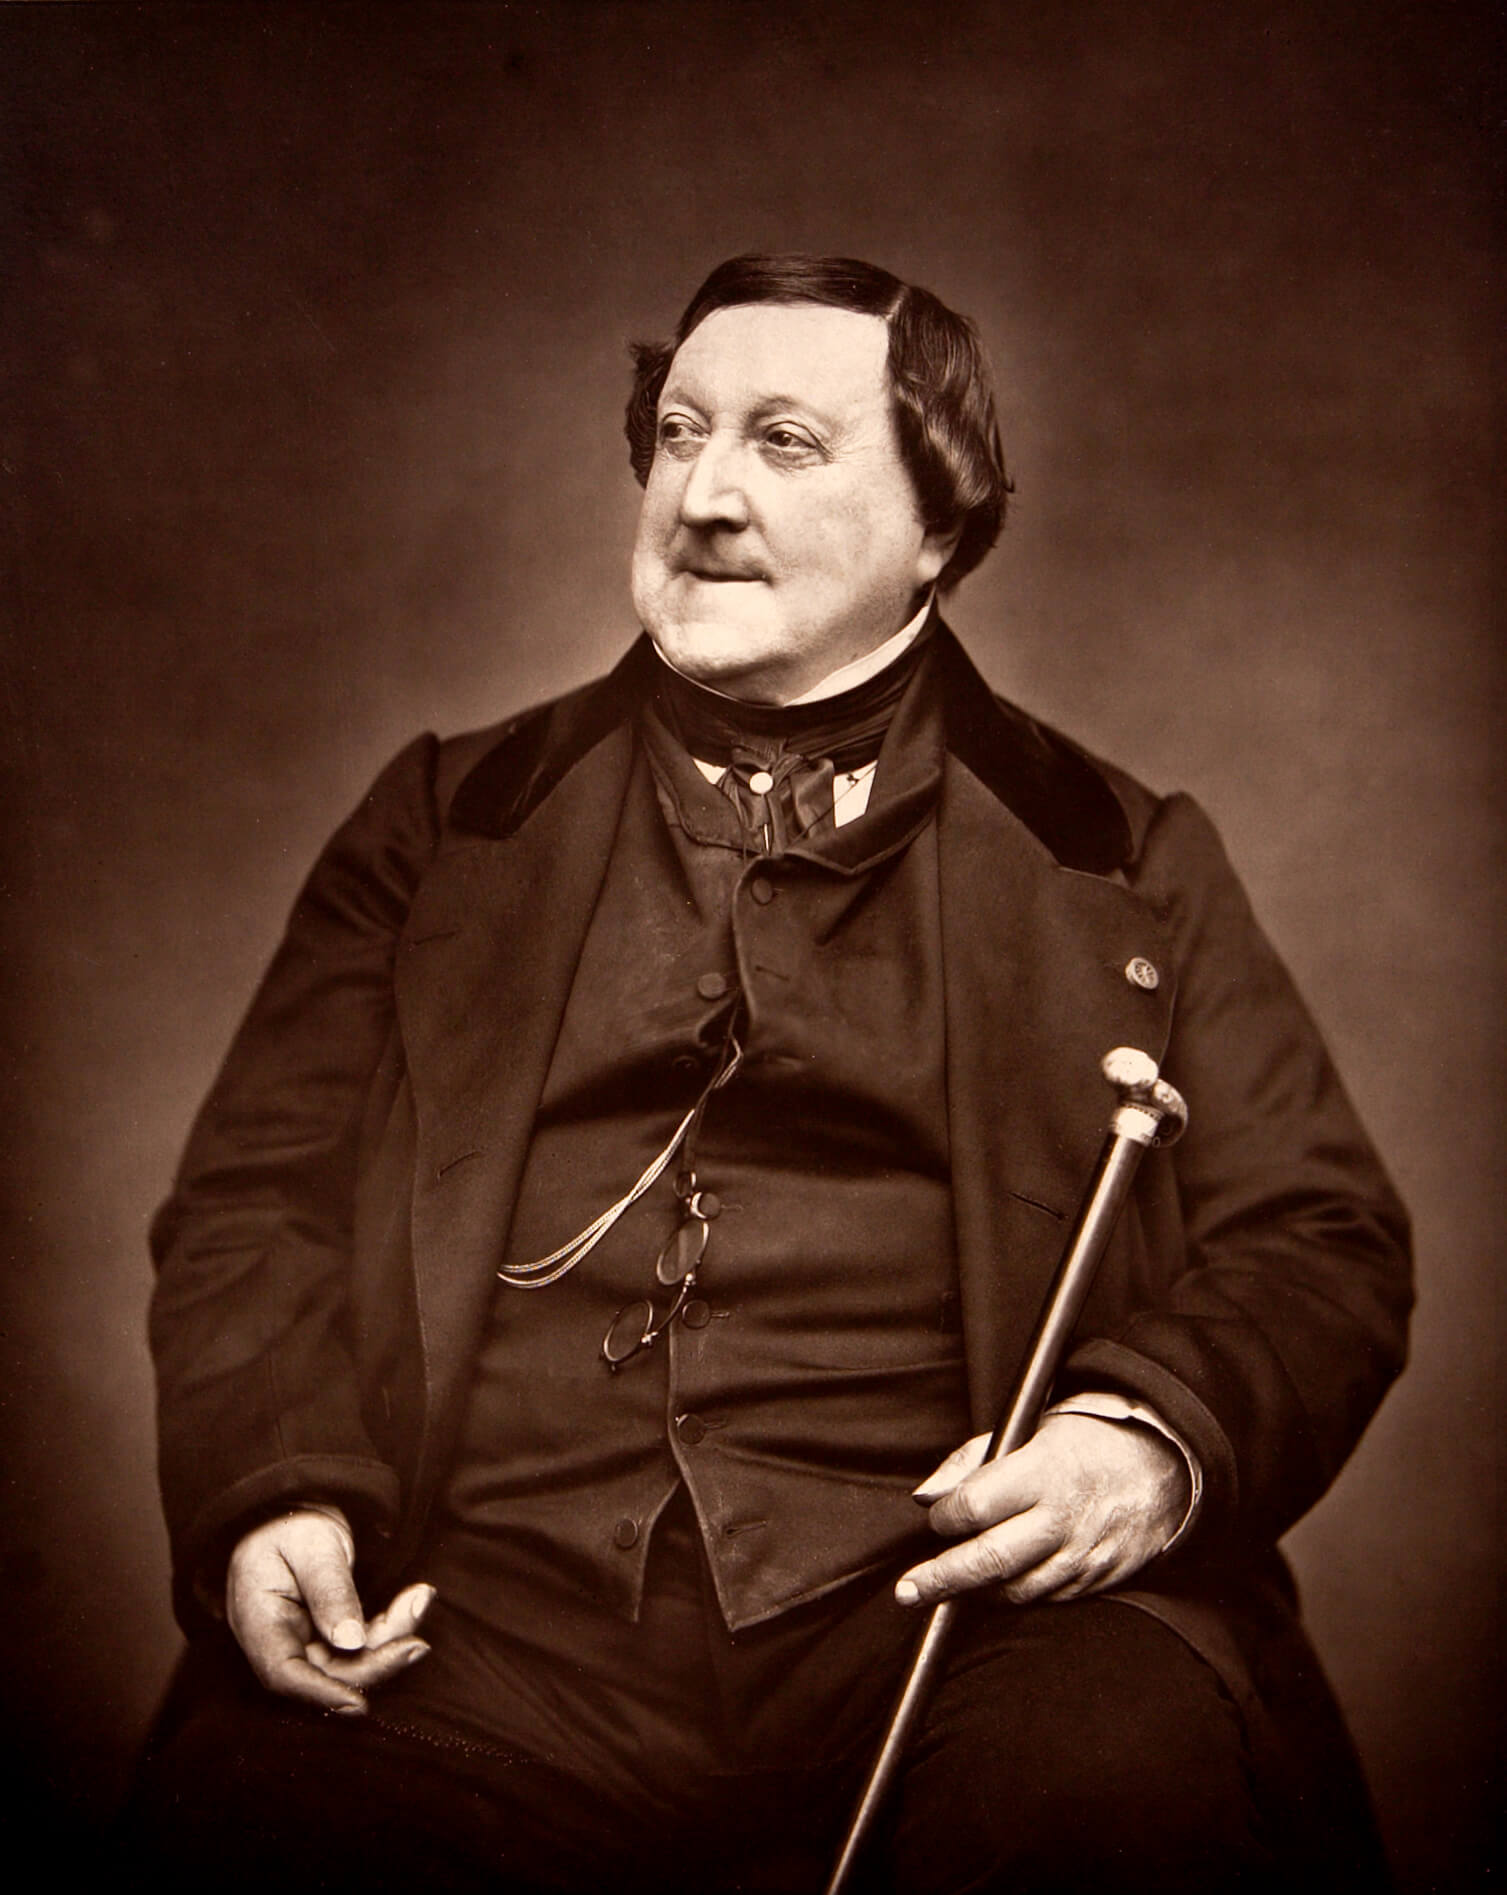 Rossini 1865. By Étienne Carjat - harvardartmuseums.org, Public Domain